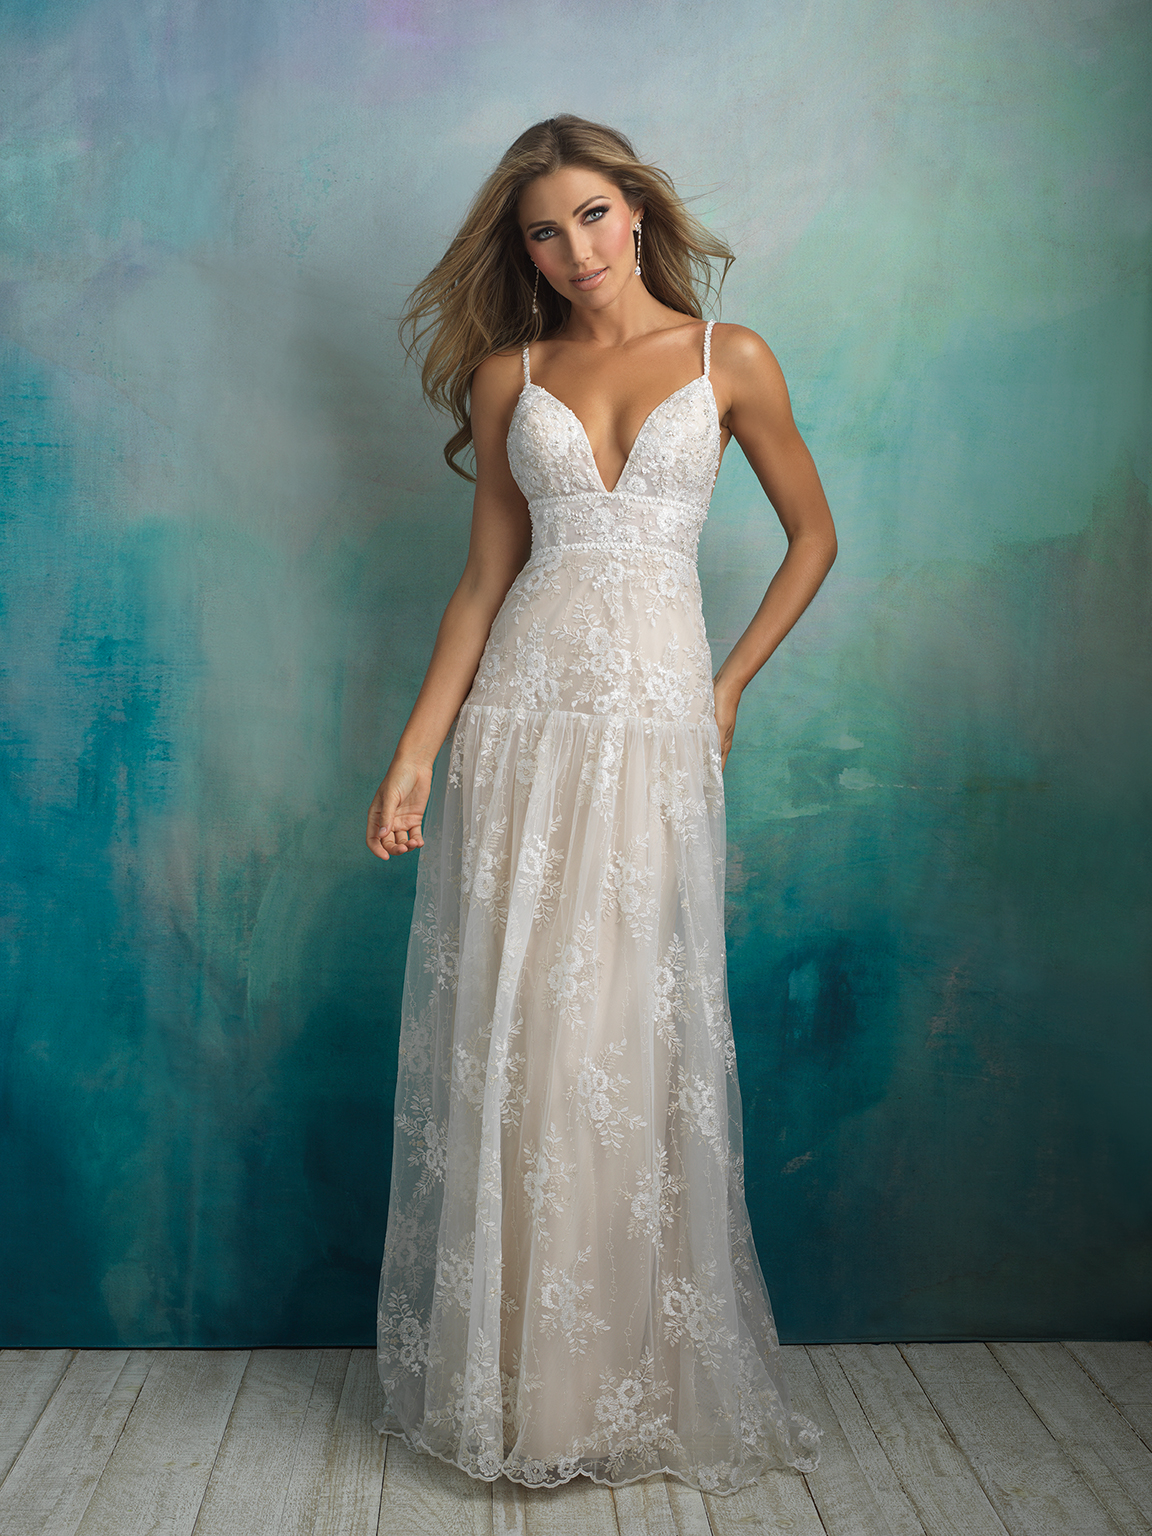 Bohemian A-line Wedding Dress | Kleinfeld Bridal